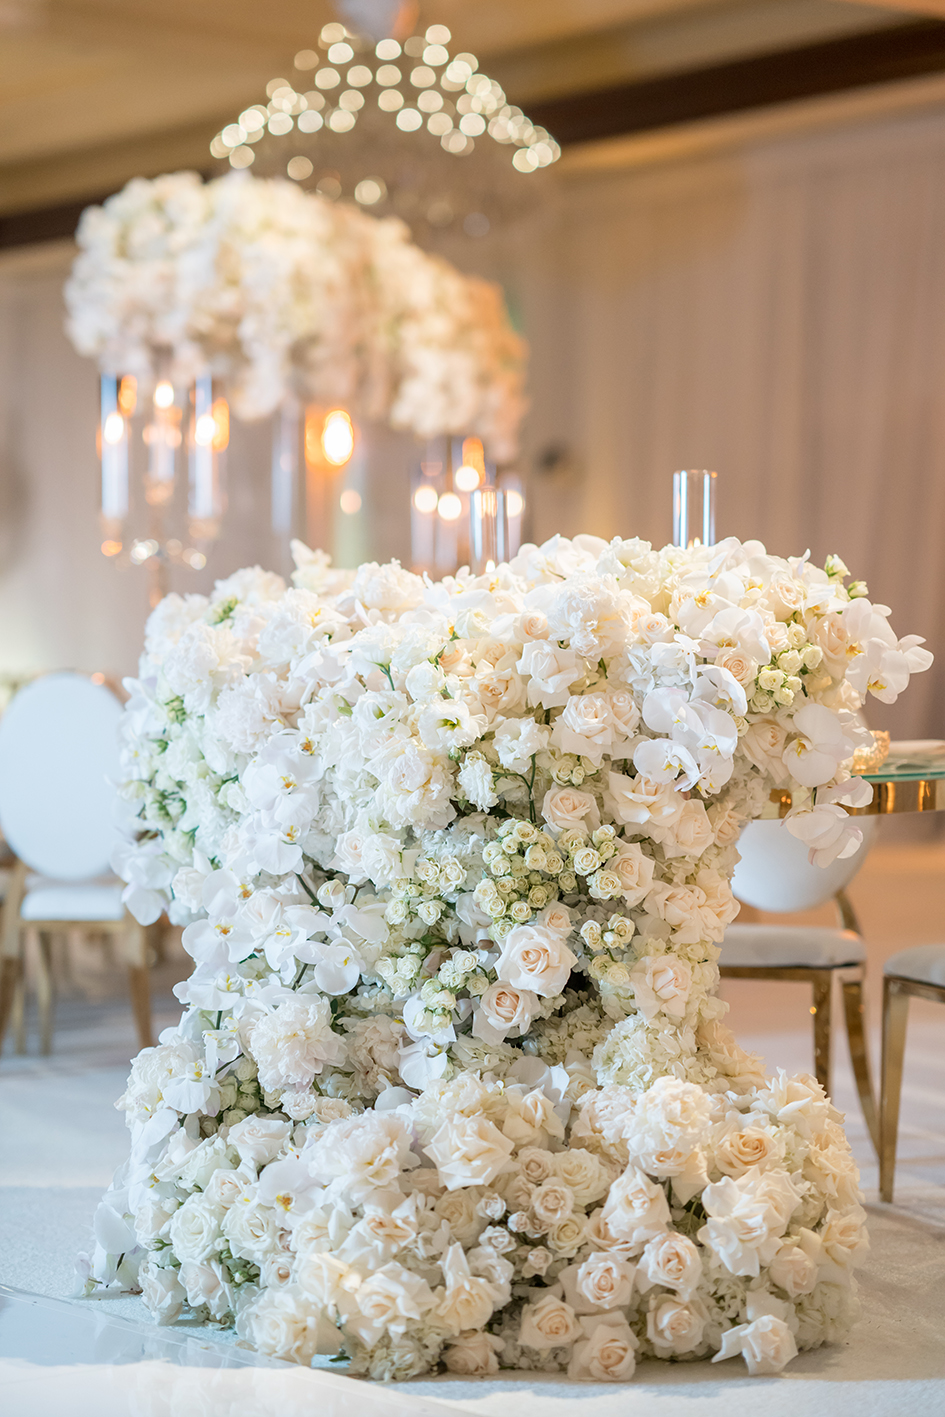 Floral decor at Michael and Neda's wedding at Four Seasons Westlake Village